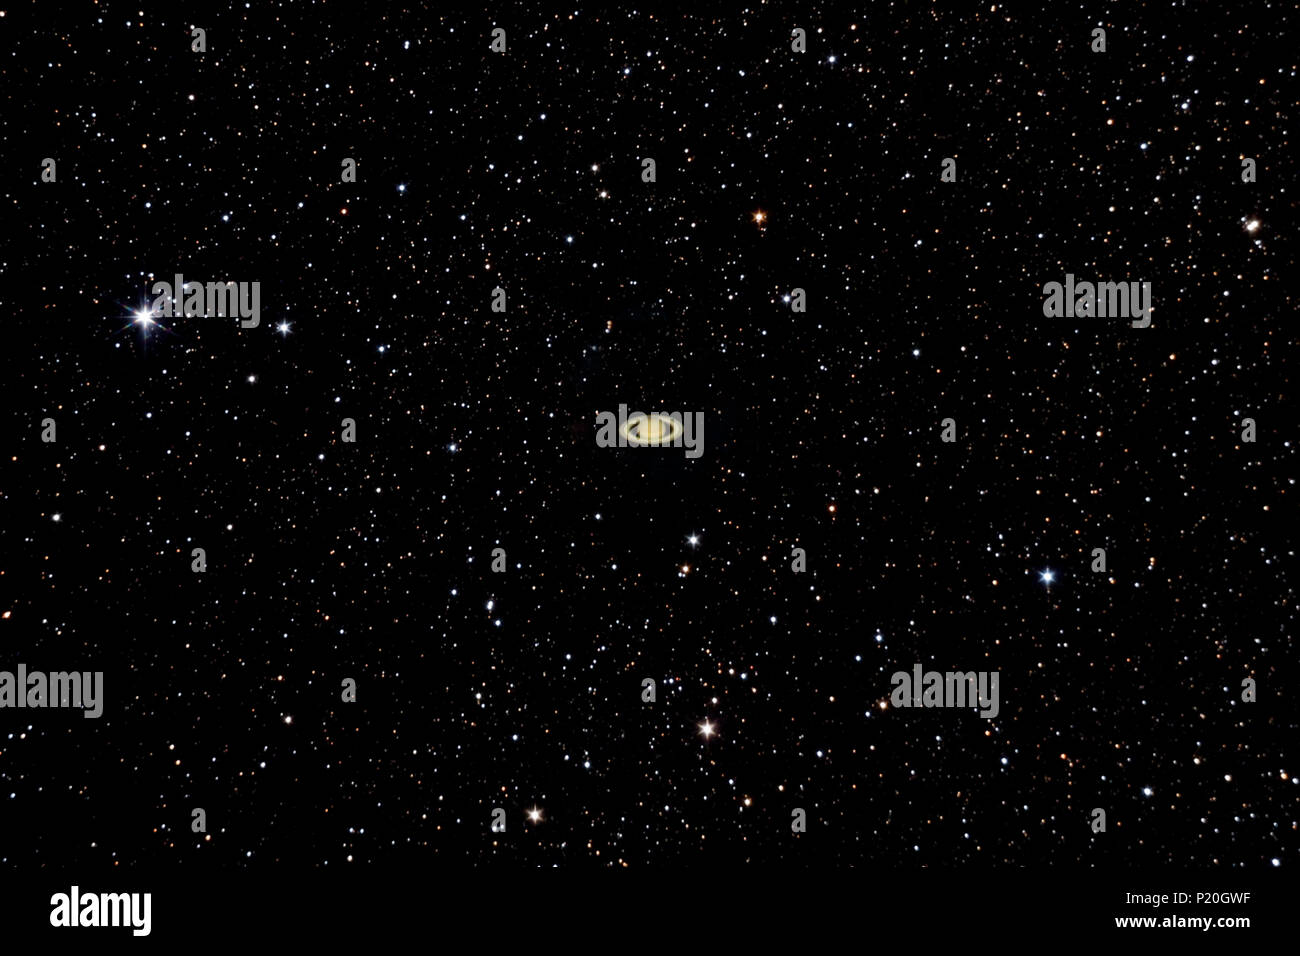 The planet Saturne shines in front of hundreds of stars. - Stock Image